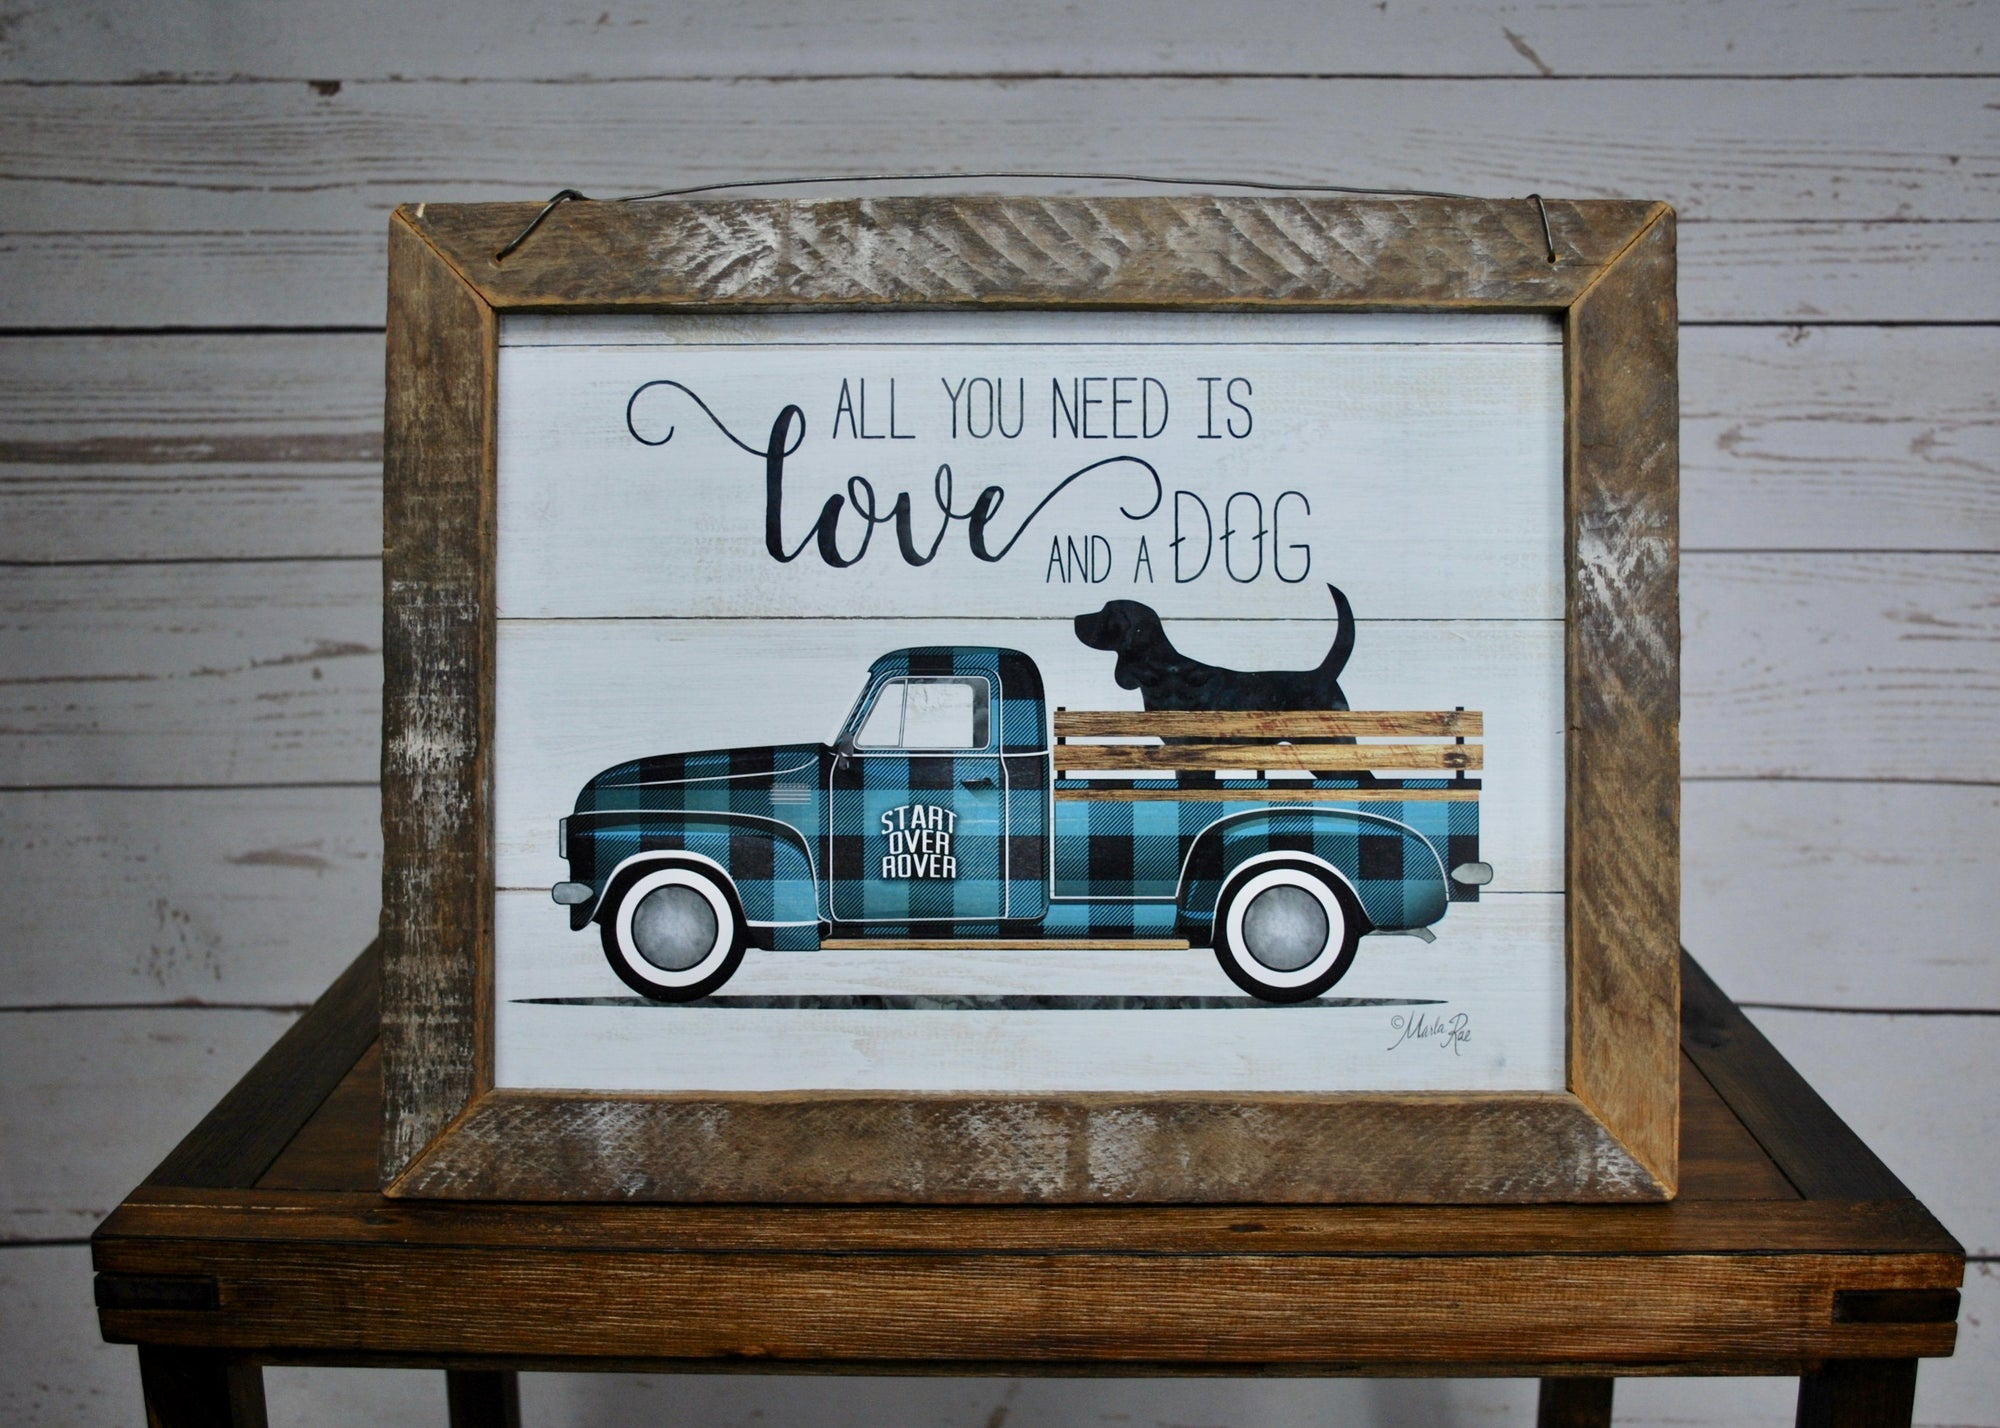 Dog Mom, Dog Dad, Dog Decor, Dog Sign, All You Need is Love and a Dog, Farmhouse Sign, Pet Gifts, Dog Gifts, Dog Decor, Rustic Truck, Rustic Truck Decor